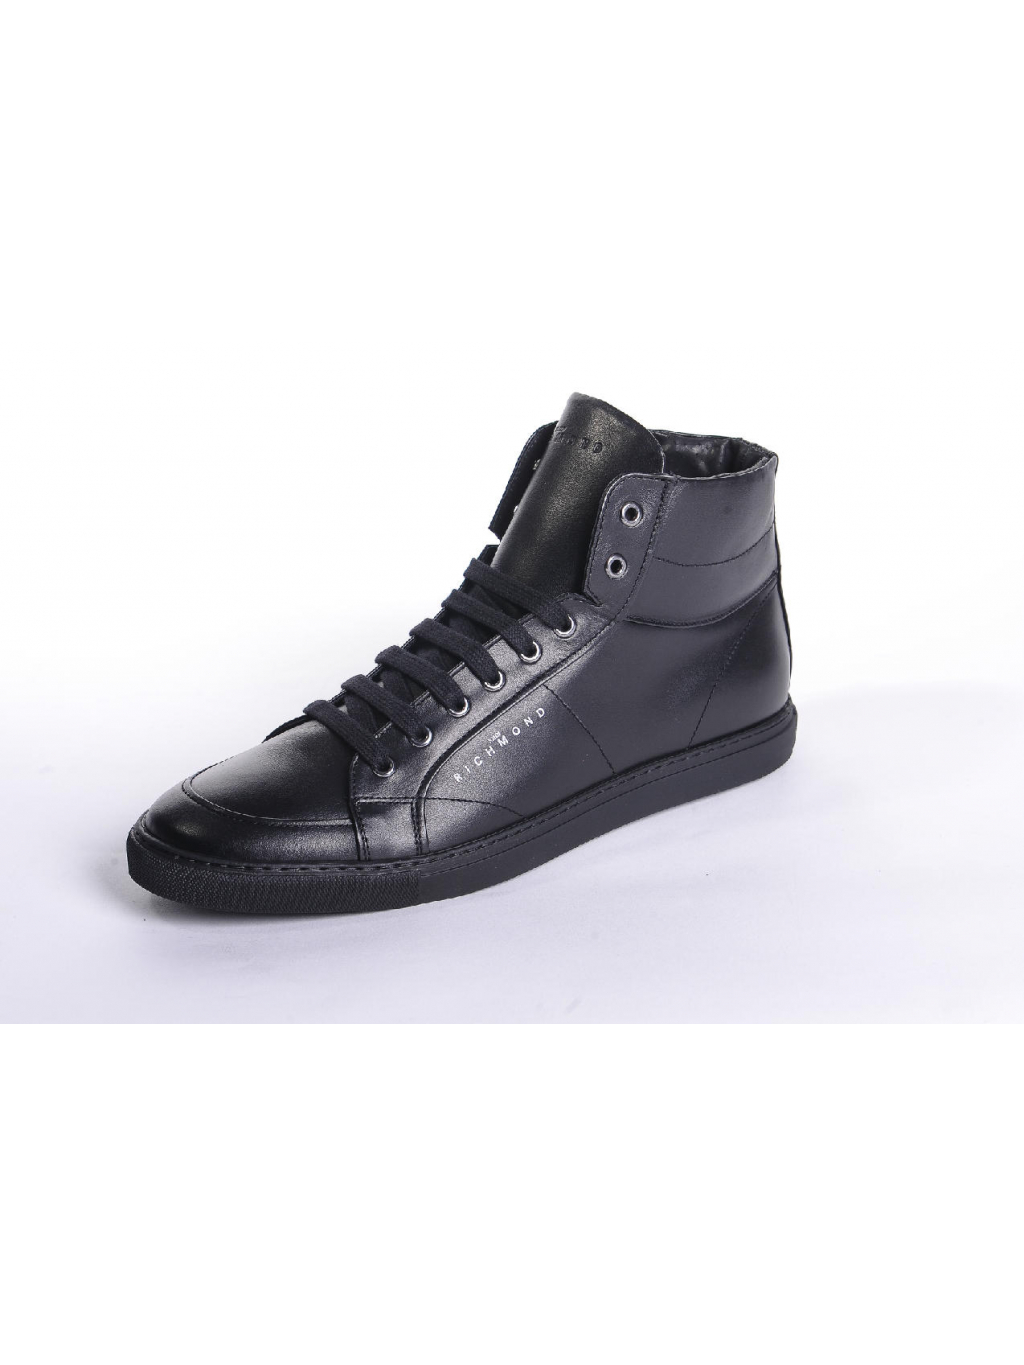 6feb96121b Luxusné topánky Armani Jeans Sneaker Nero Made in Italy